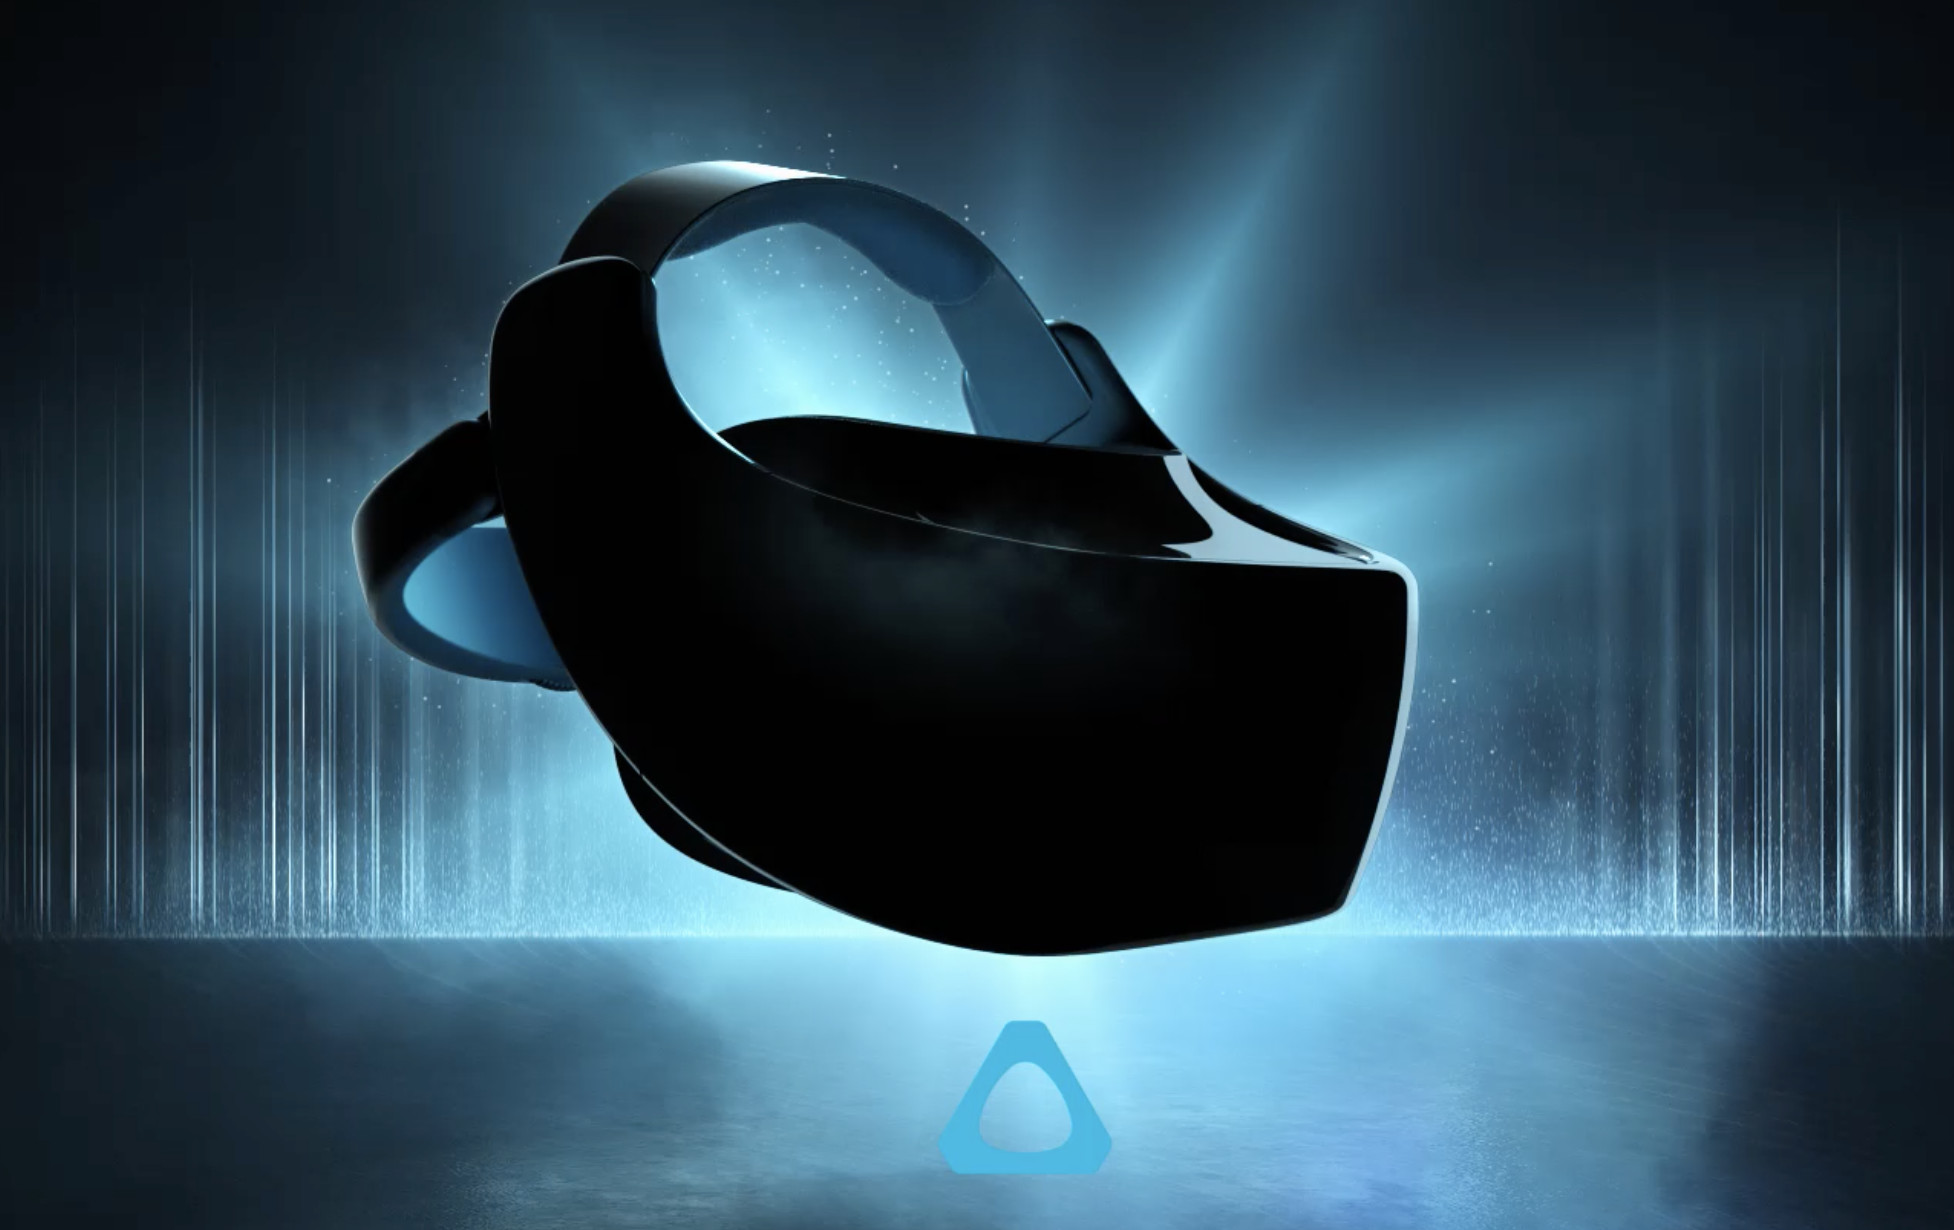 HTC Vive Focus premium standalone VR headset launched